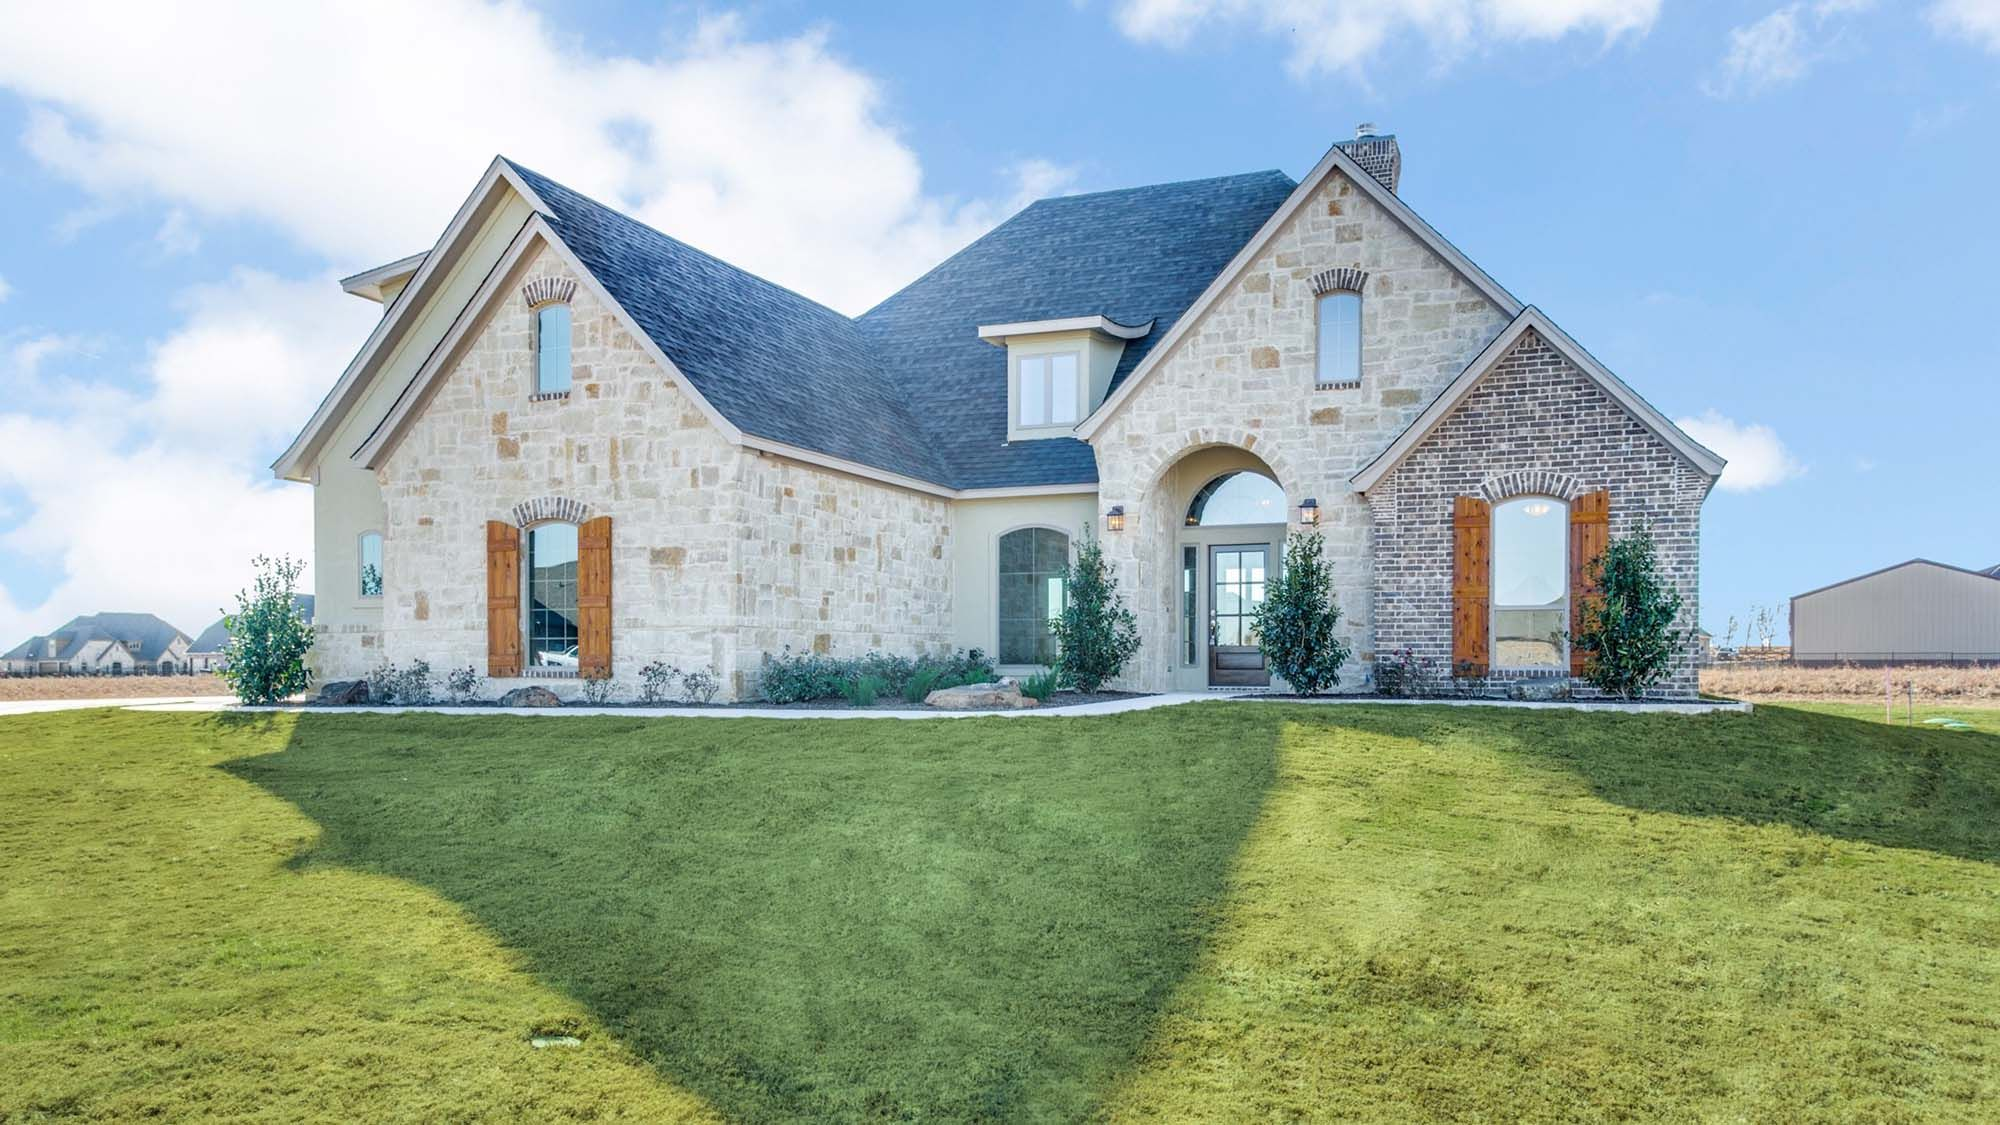 Custom Home Builders near Denton, Texas